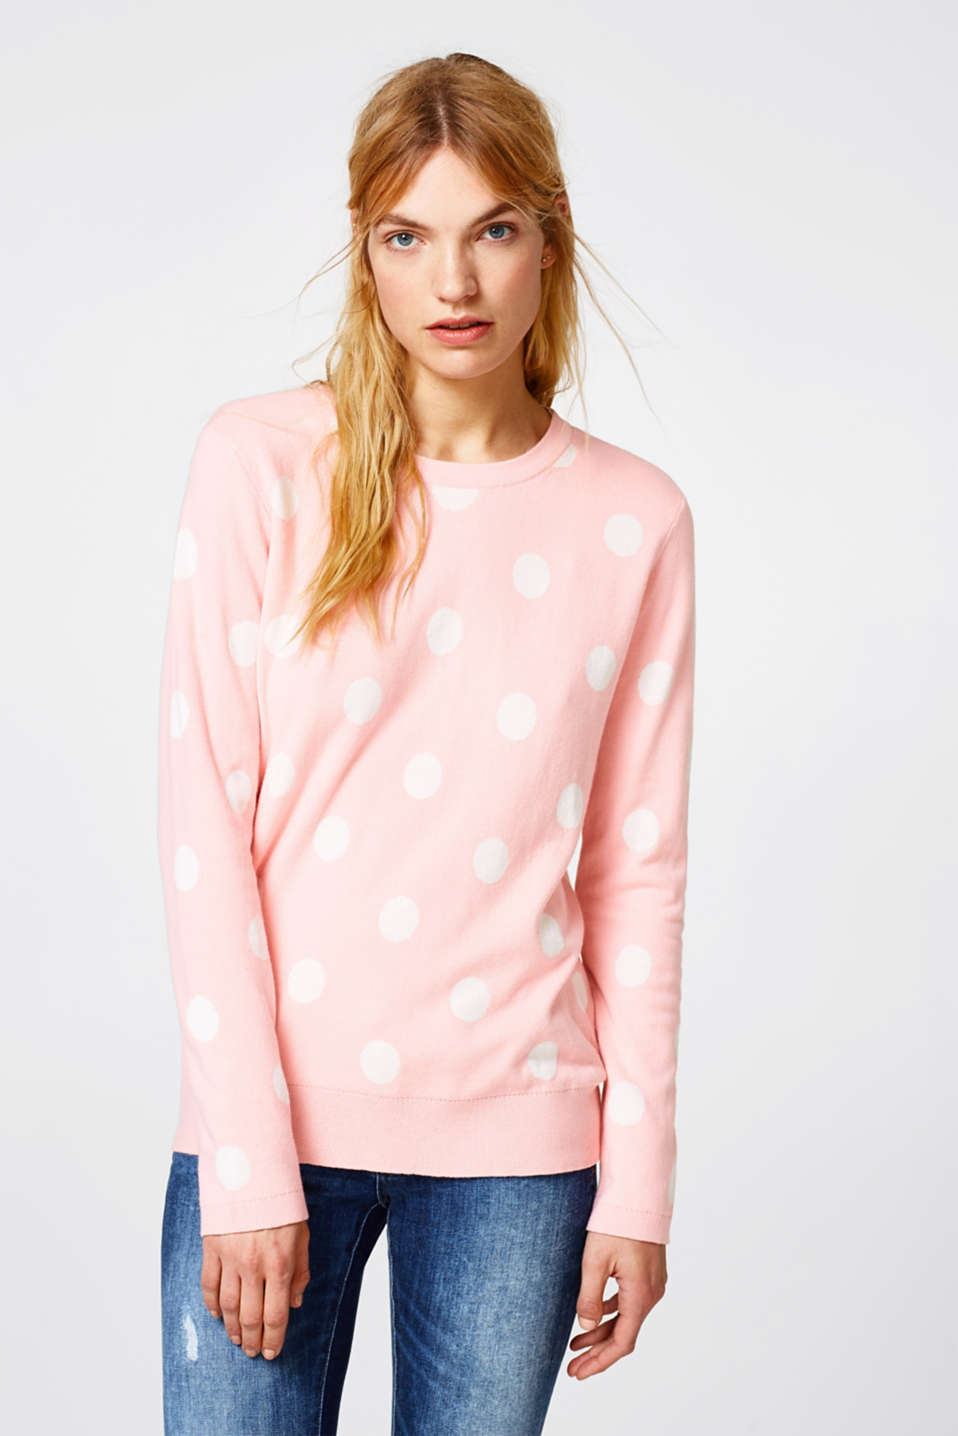 Esprit - Jumper with polka dots, 100% cotton